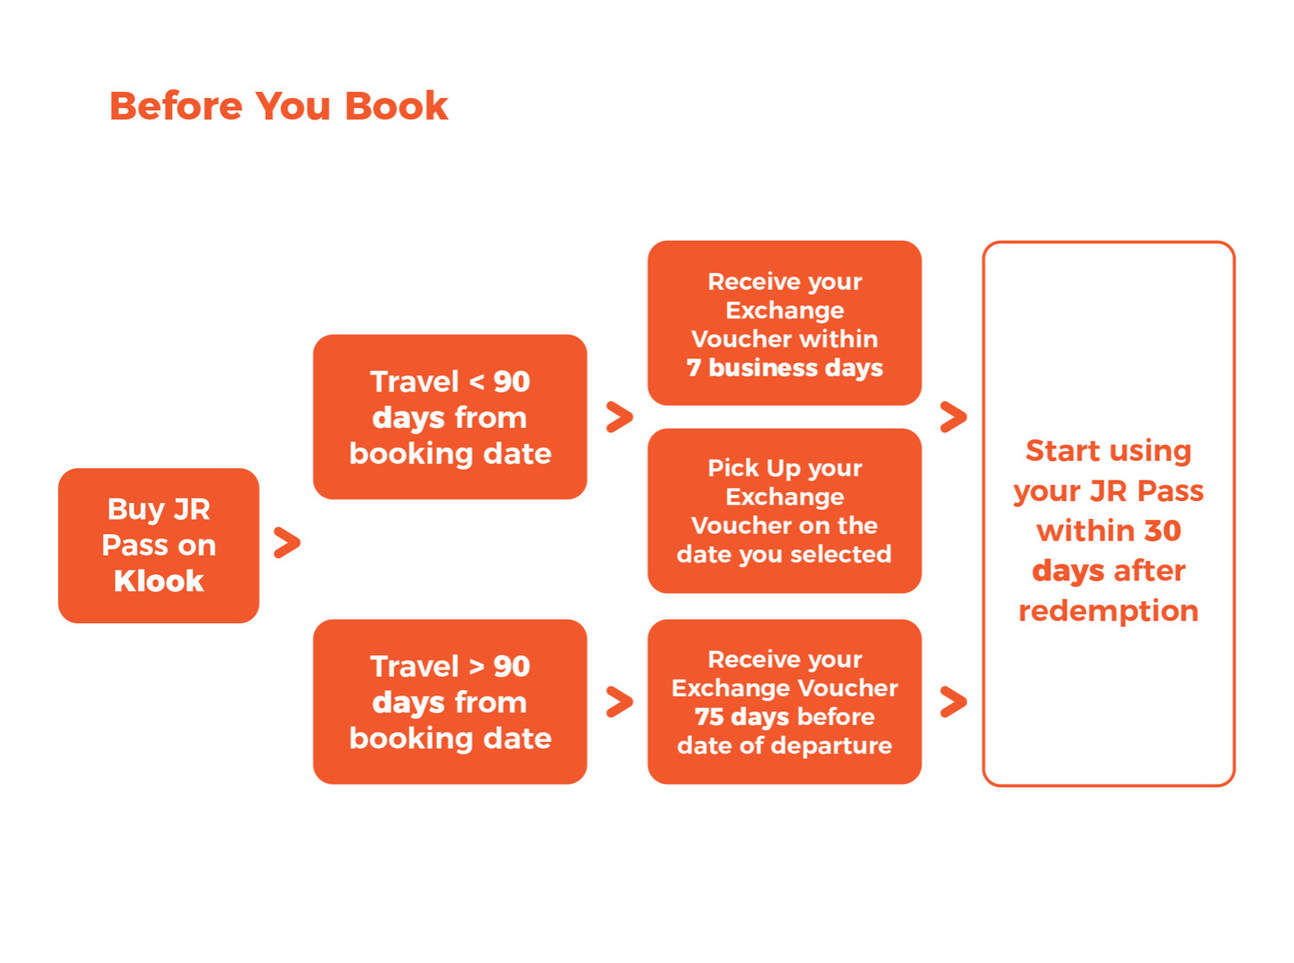 Before You Book (flow chart)